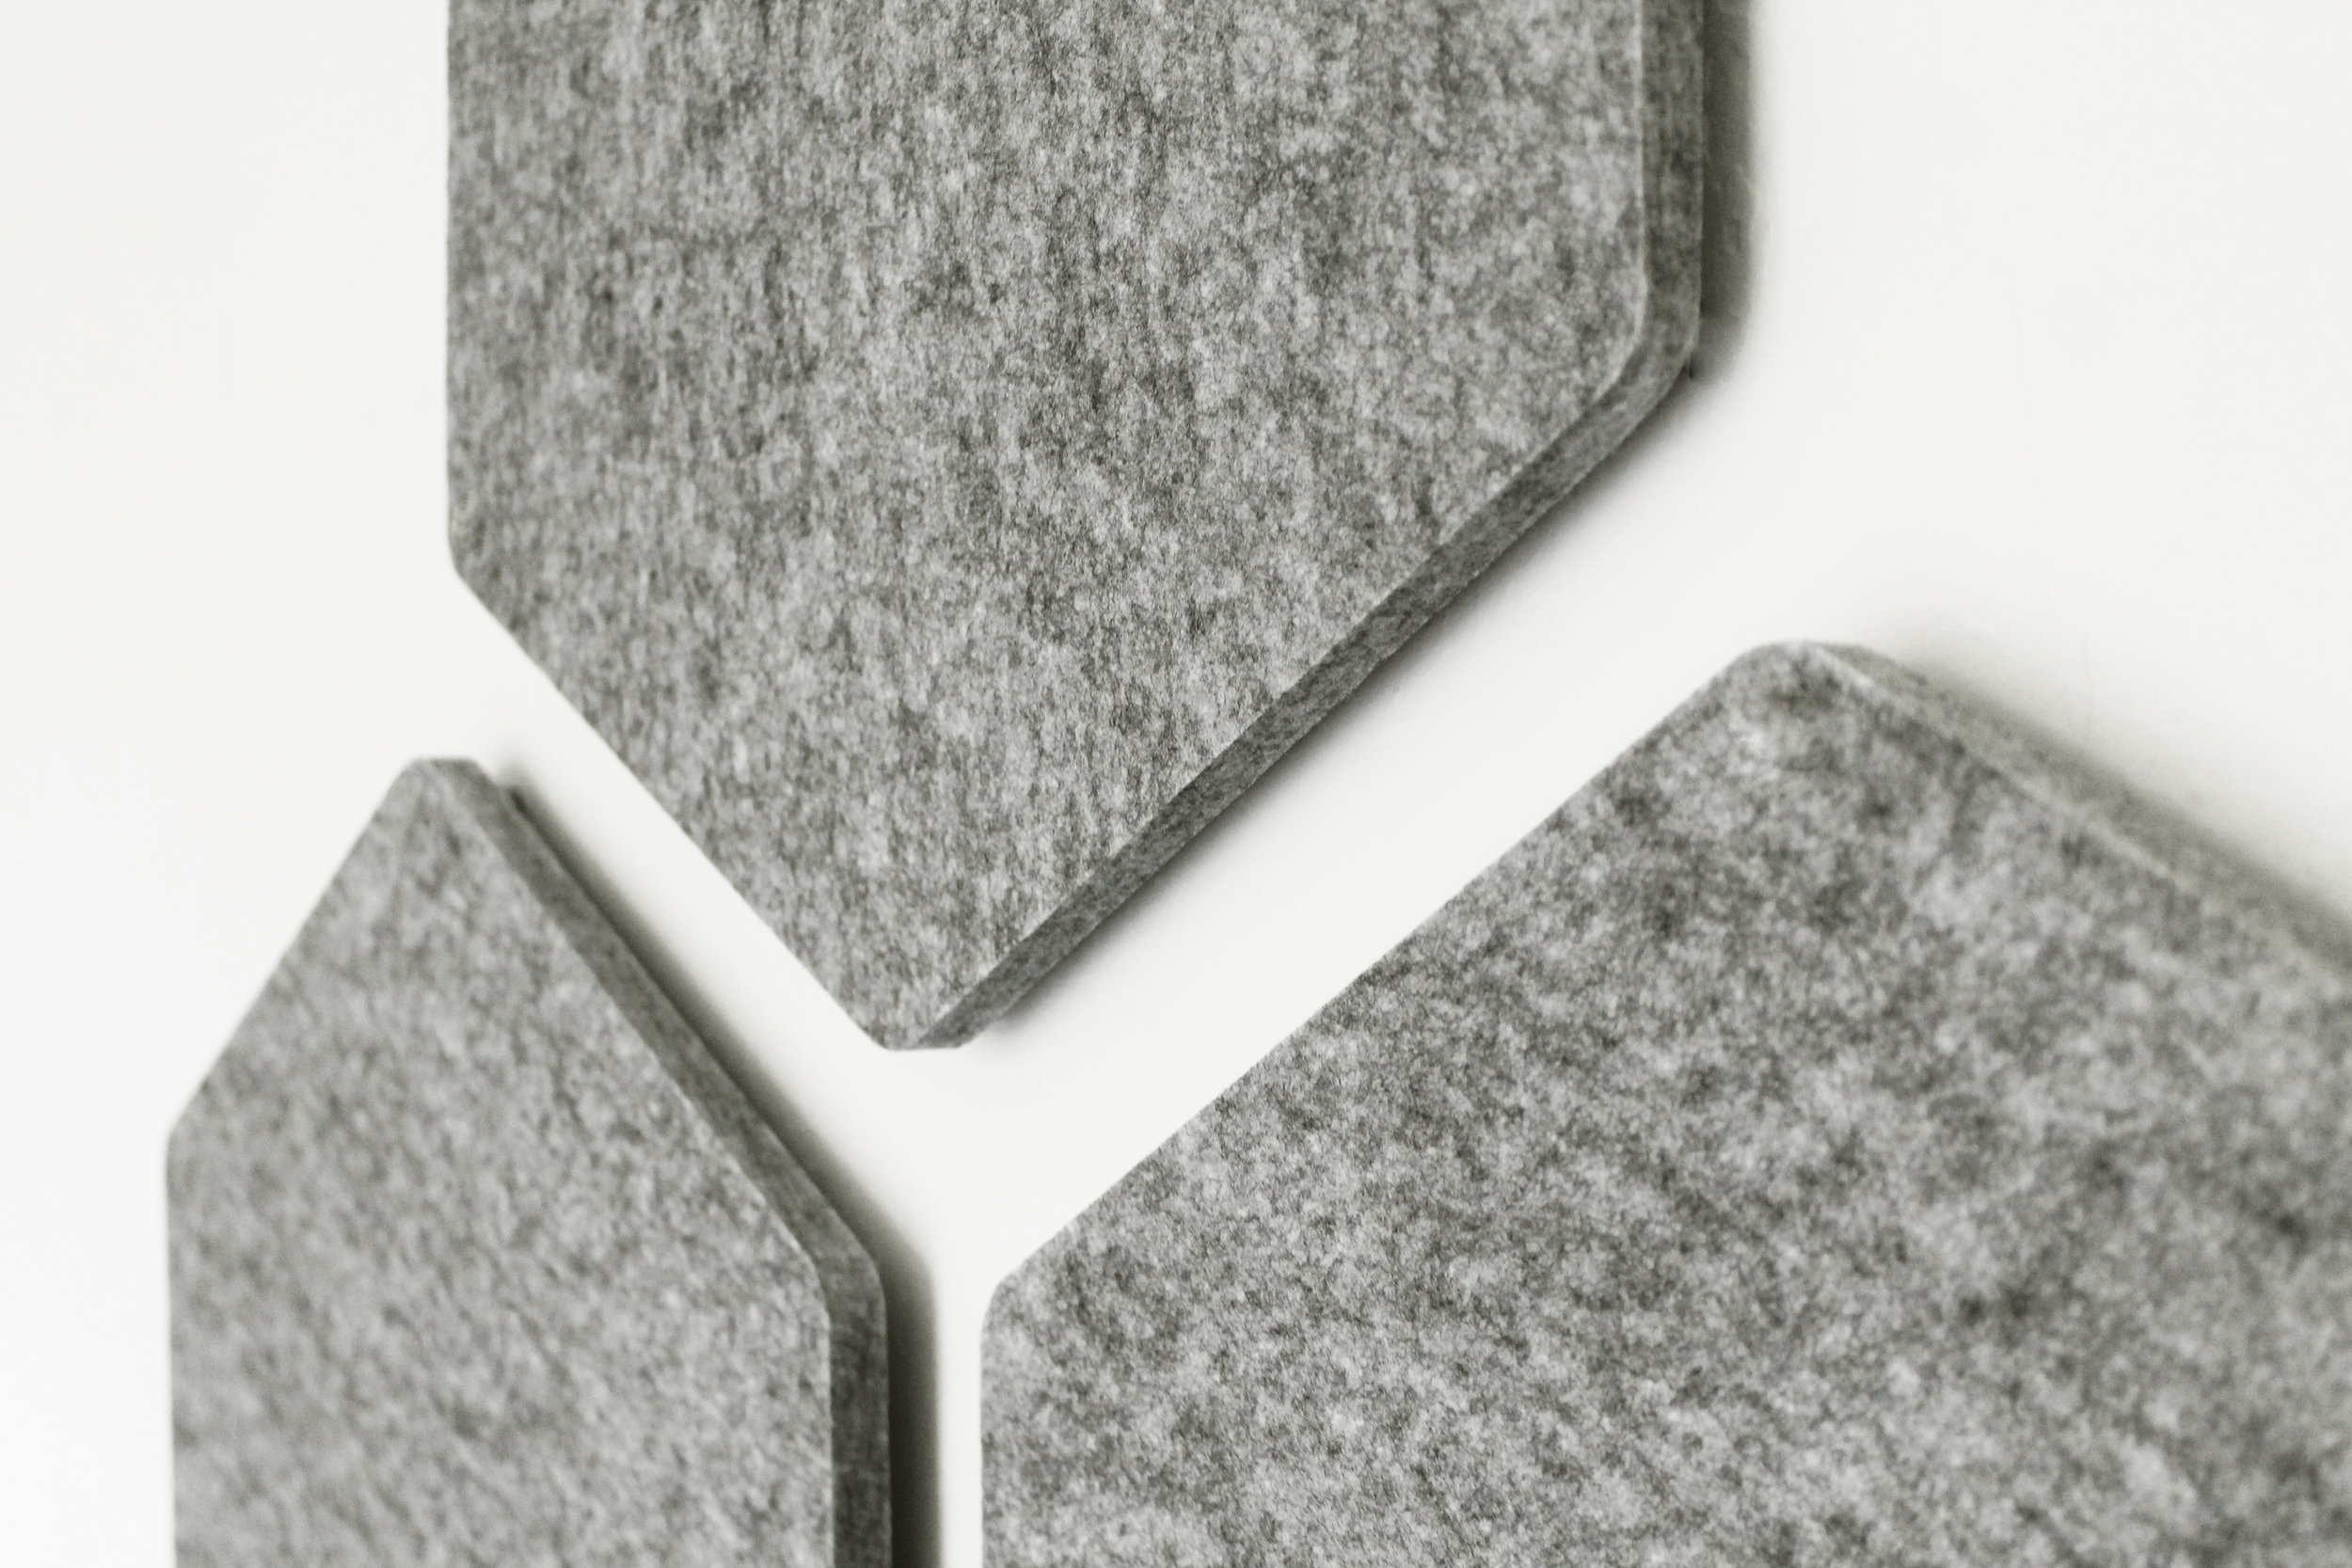 HEXIE-DESIGNER Sound Absorbing Hexagonal ACOUSTIC WALL PANELS. Melange Grey, Feature wall, Sound Reducing, Living Room, Dining Room, Home Office, Sound Studio, ADHESIVE Fixing Incl. SOLD IN SETS of 3